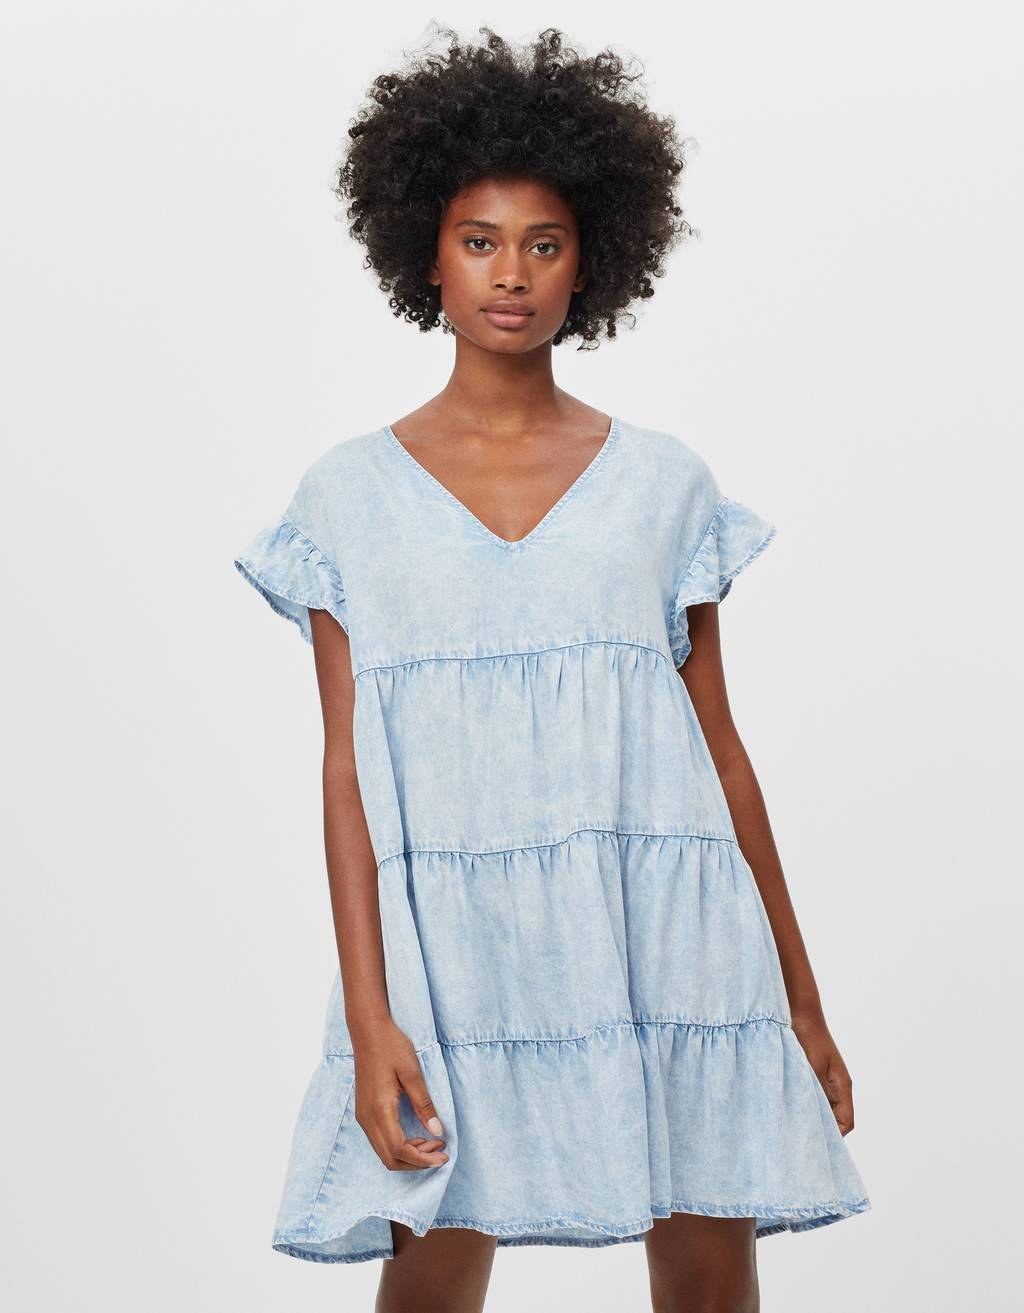 Baby-doll TENCEL ® denim dress